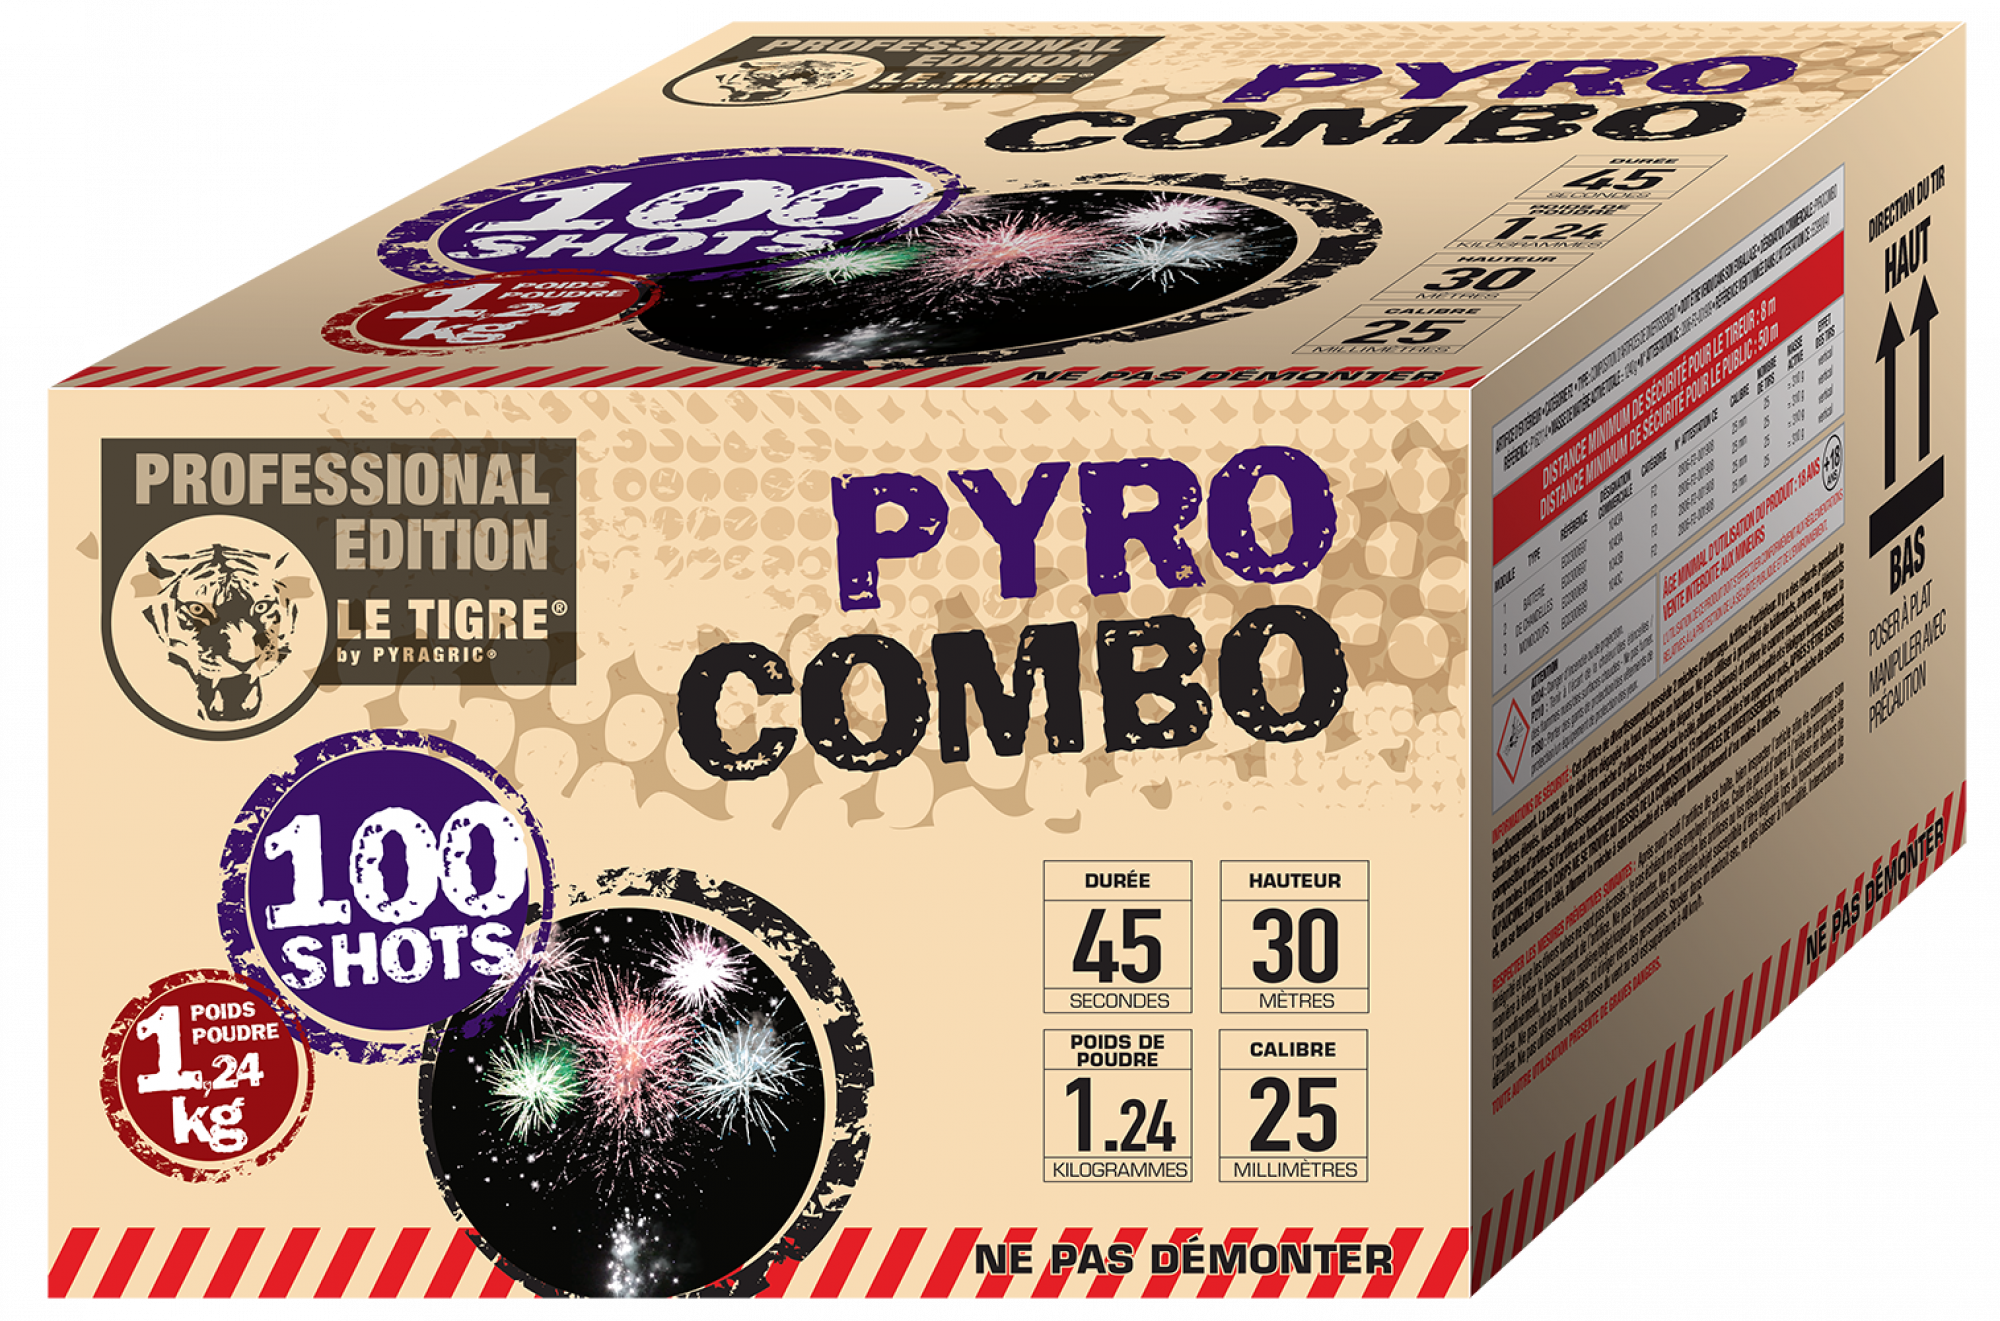 P162114-PYROCOMBO_03-2020-3D-Site